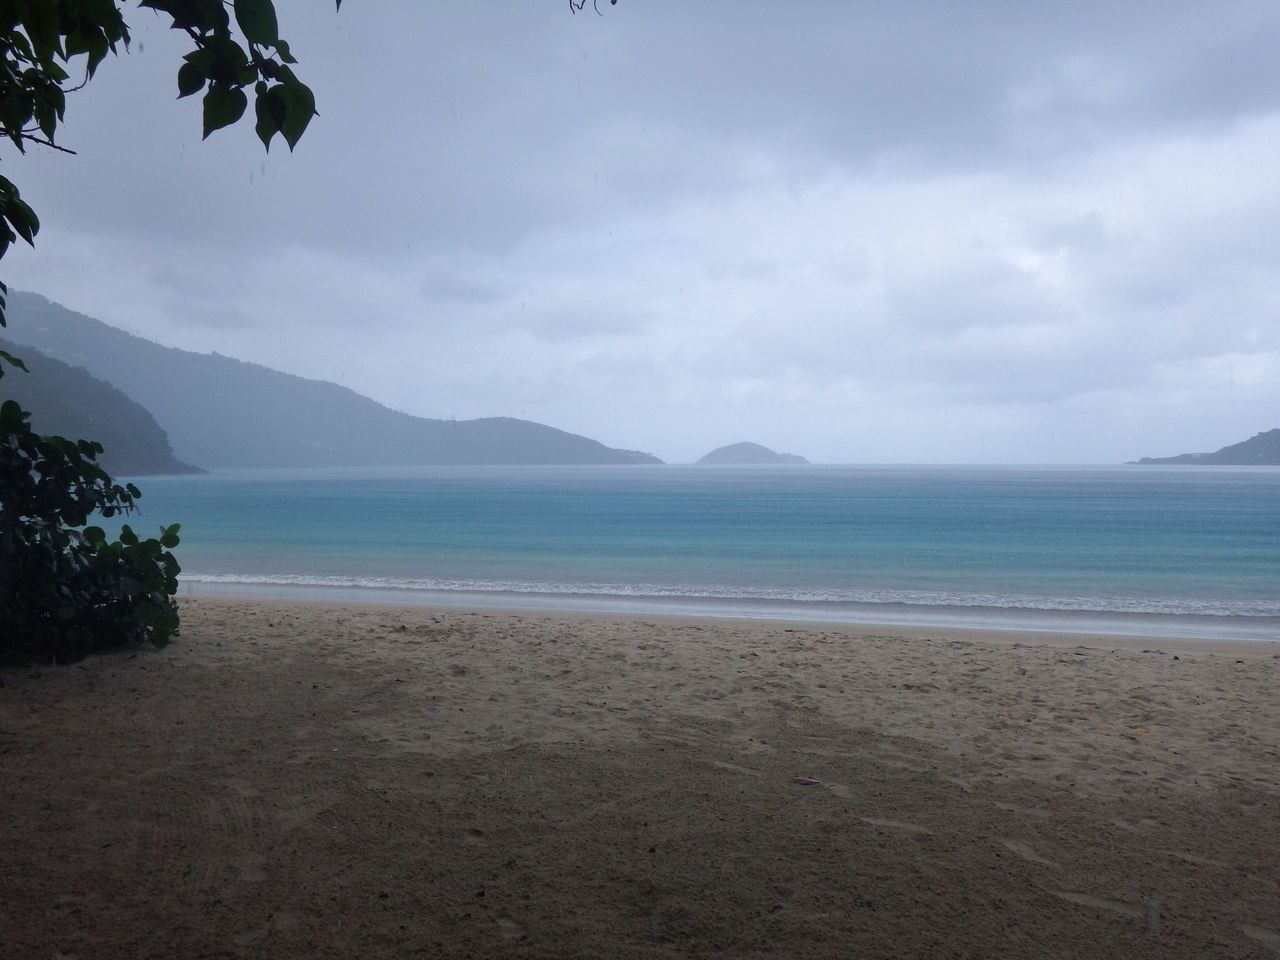 Sea Sky Nature Beach Landscape Water Vegetation Mountain No People Outdoors Day St Thomas Margens Bay Iphone6 Rainy Day Rain In Paradise